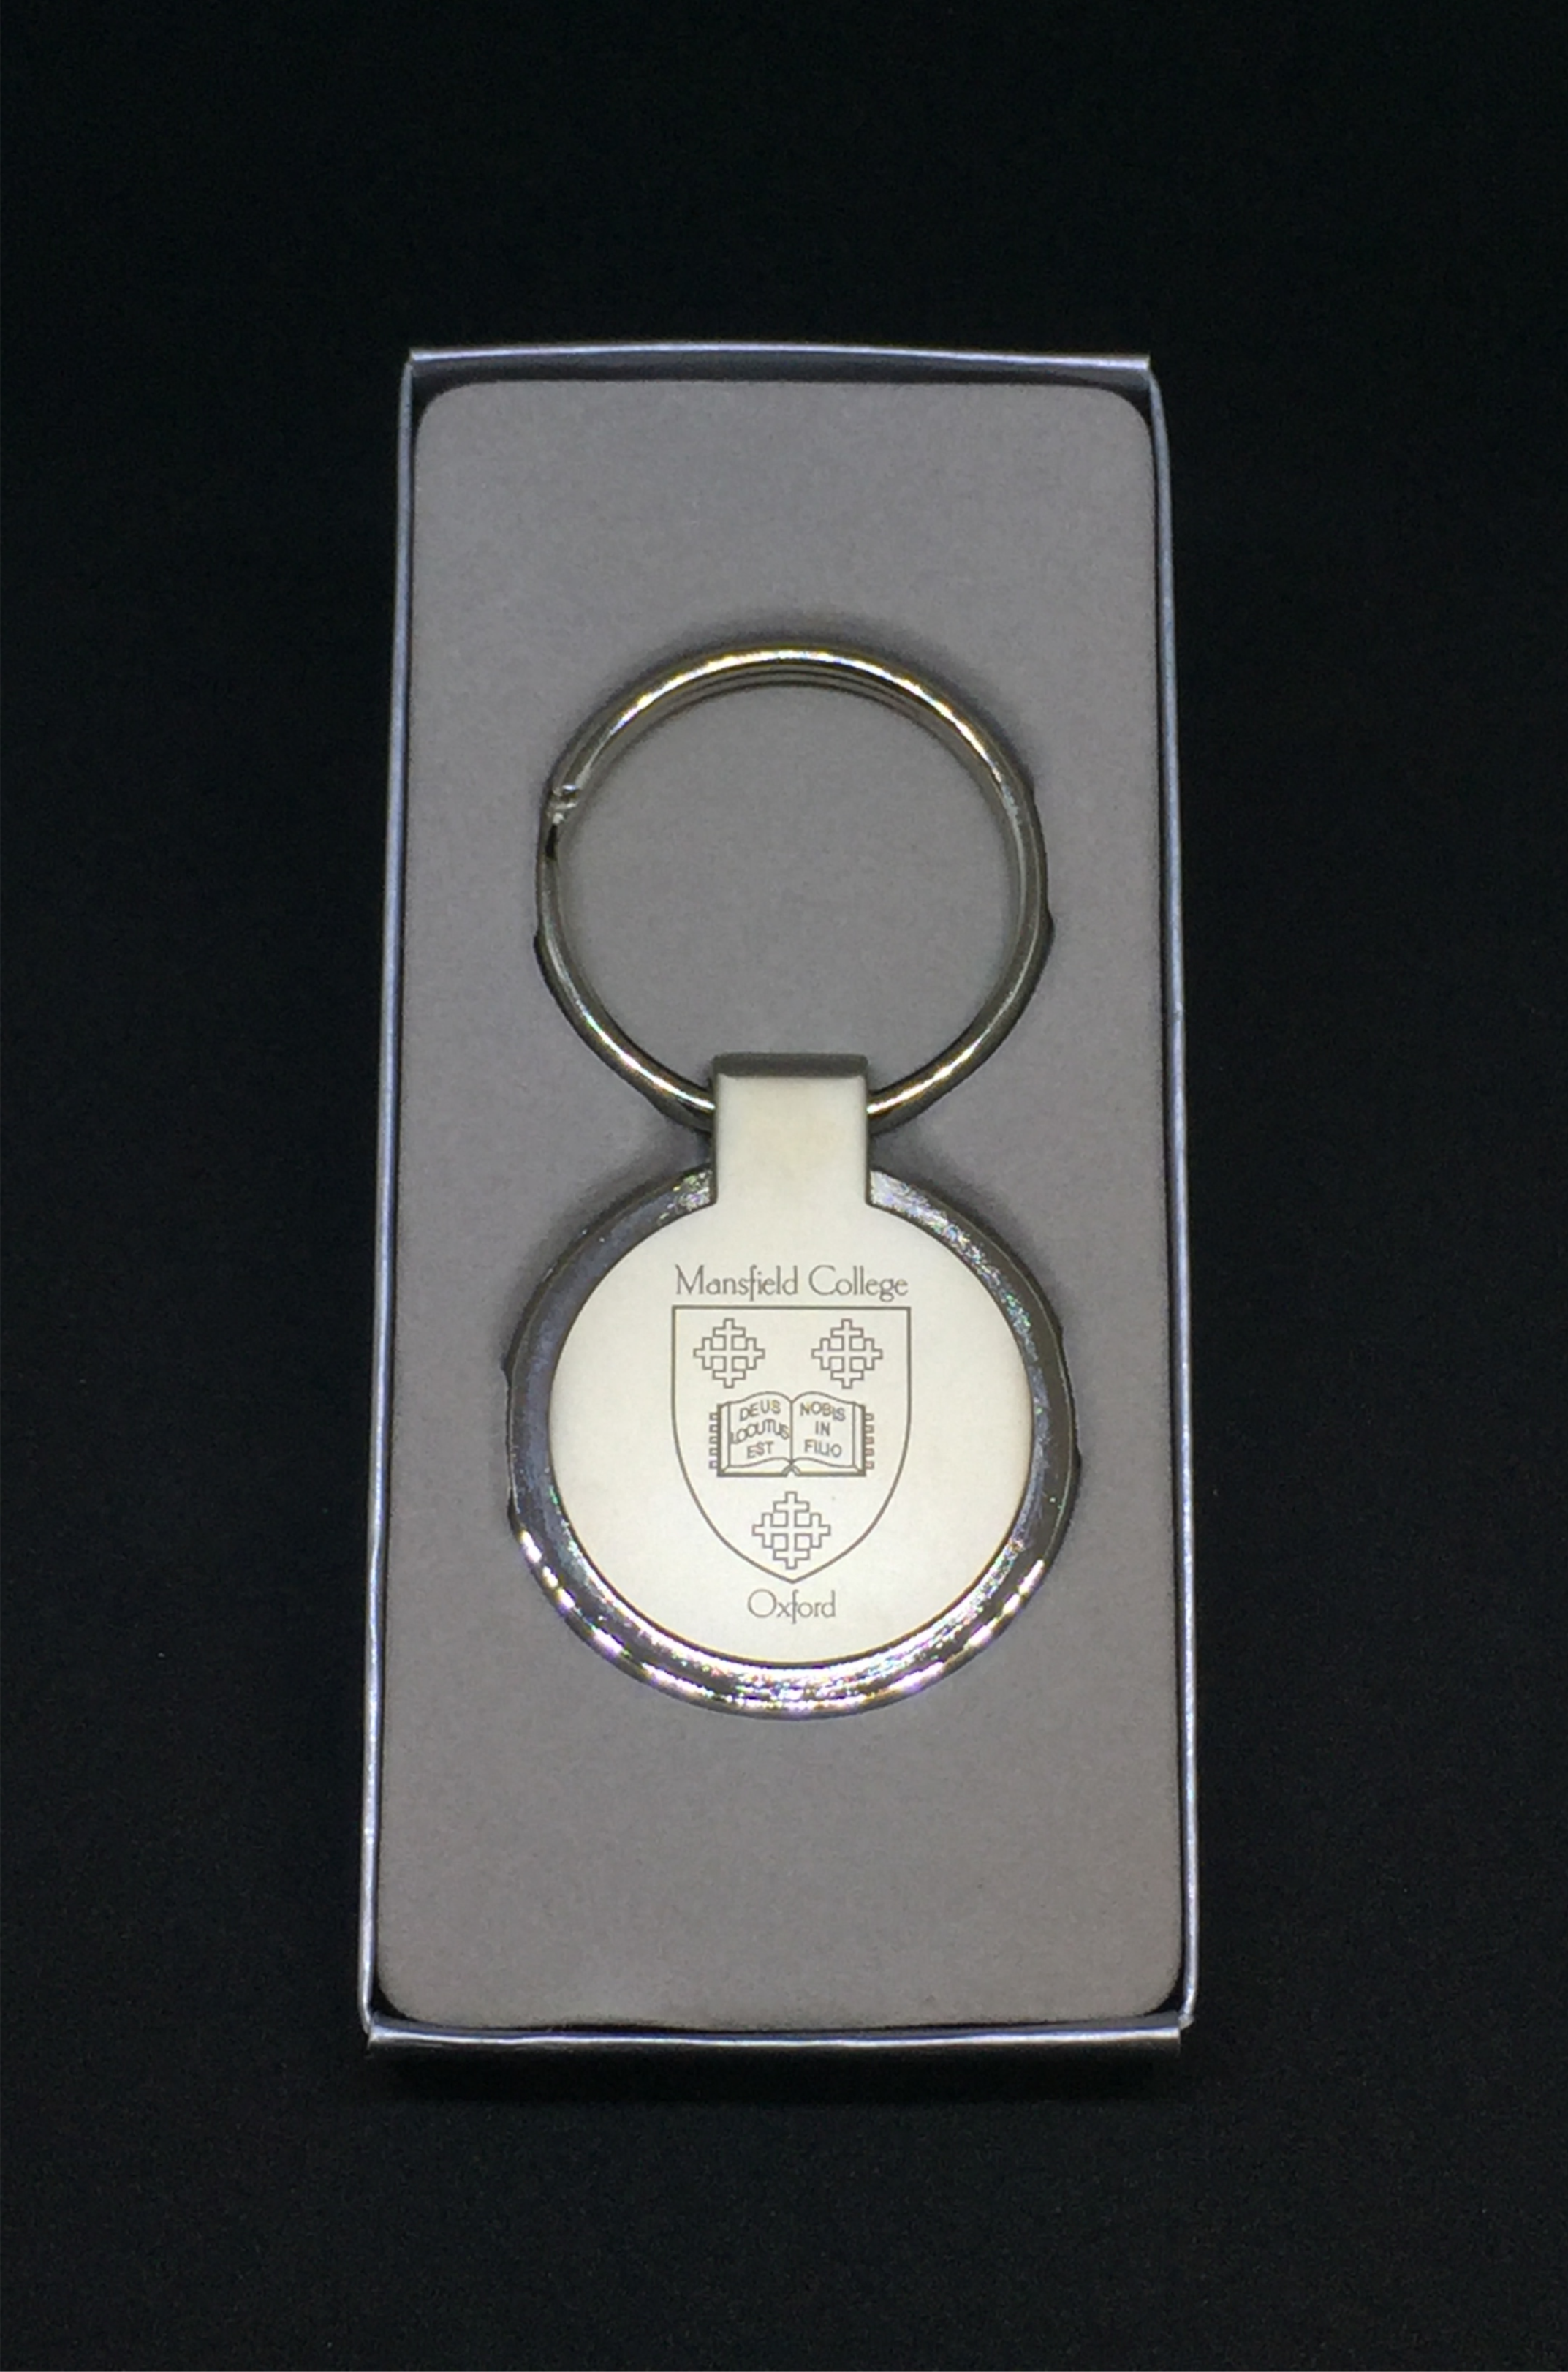 The engraved keyring is shown in a presentation box.